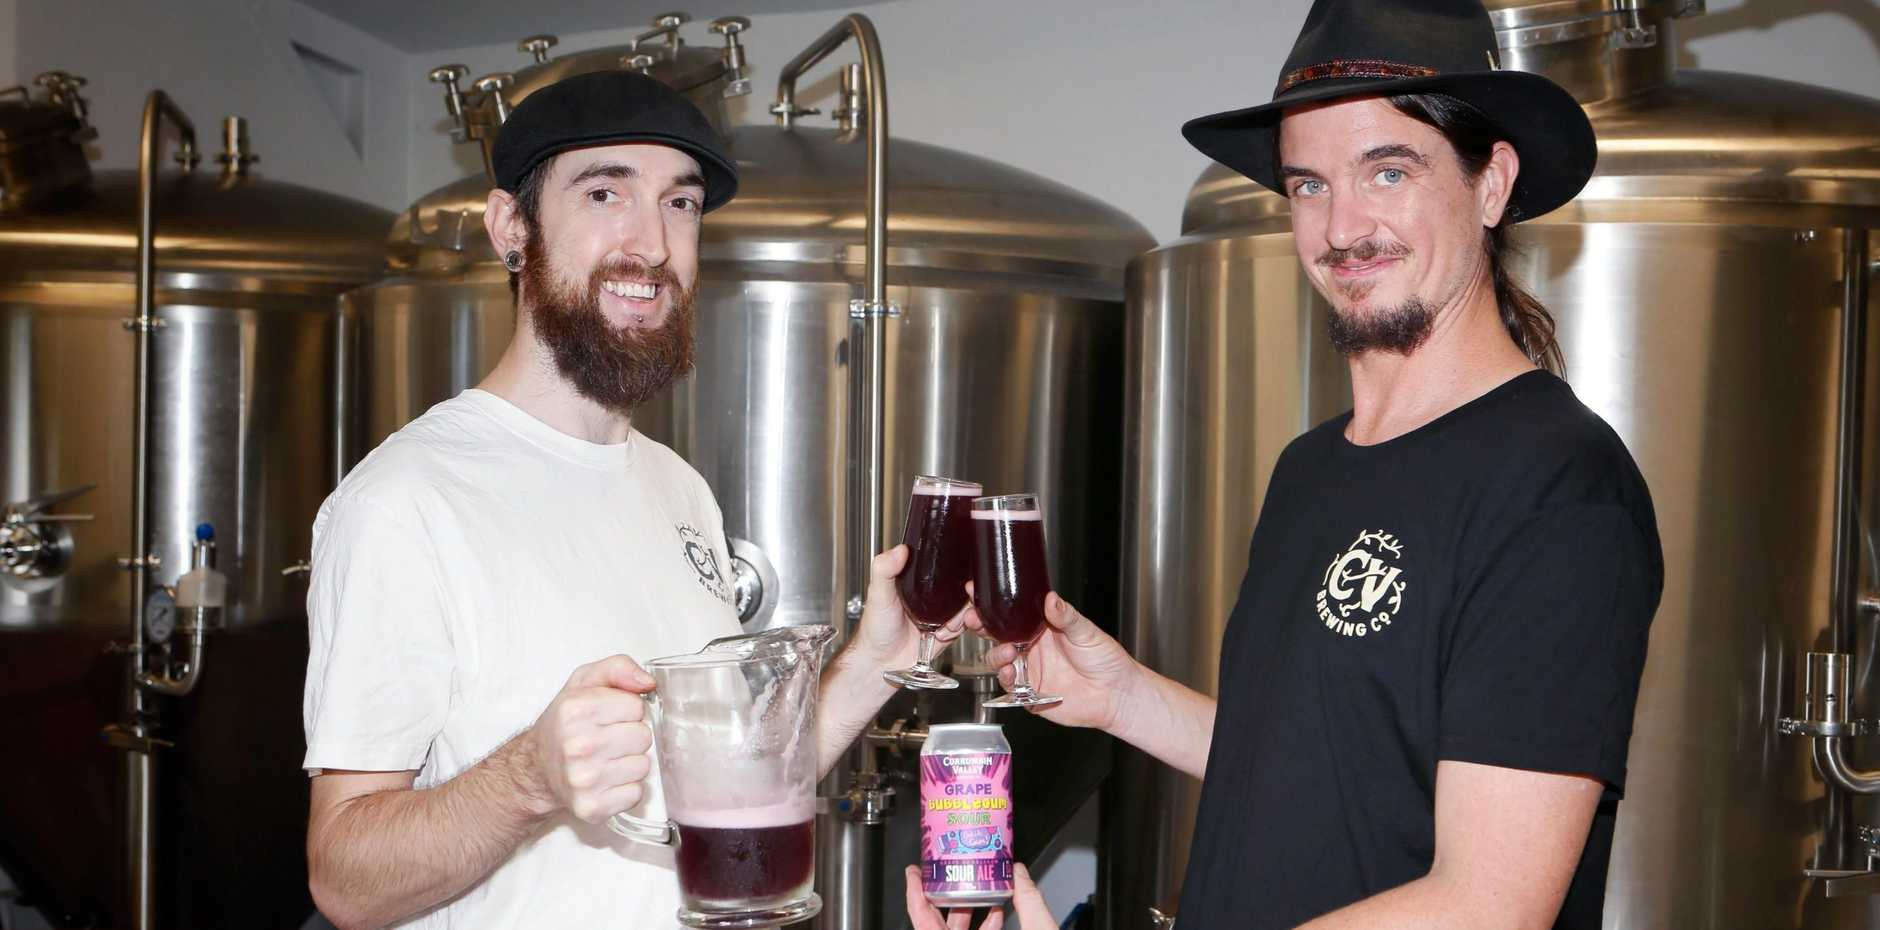 Currumbin Valley Brewing's Luke Ronalds and Peter Wheldon toast the success of their Grape Bubblegum Sour brew which was named the People's Choice at the Great Australasian Beer Spectacular.